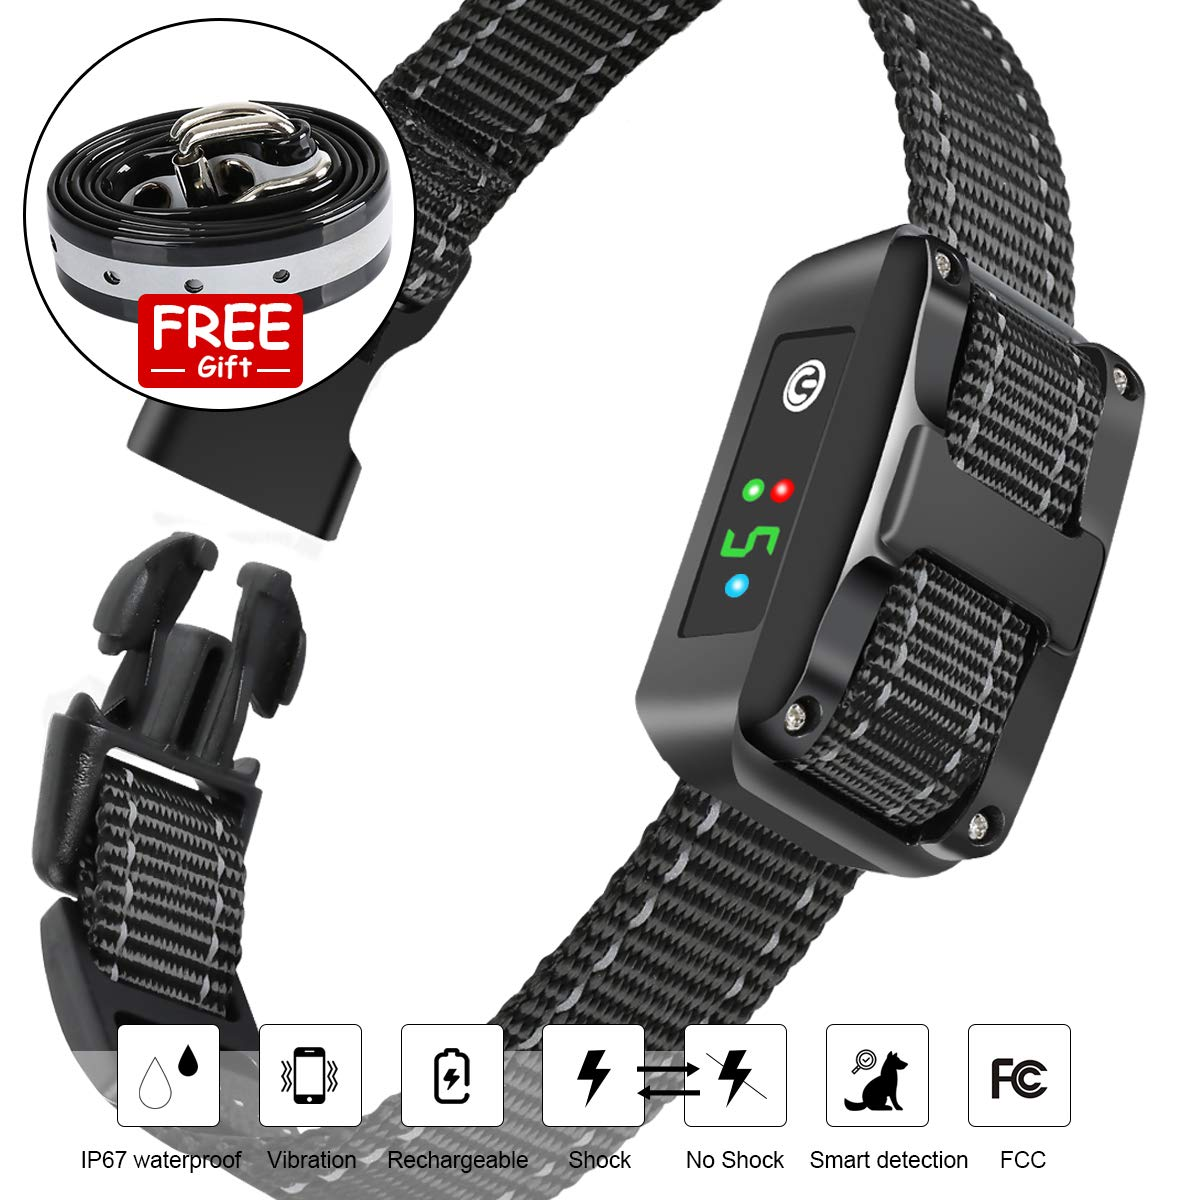 Rechargeable Bark Collar with Upgraded Smart Detection Module - Safe Anti Barking Devices Training Control Collars for Small, Medium, Large Dogs All Breeds, IP67 Waterproof